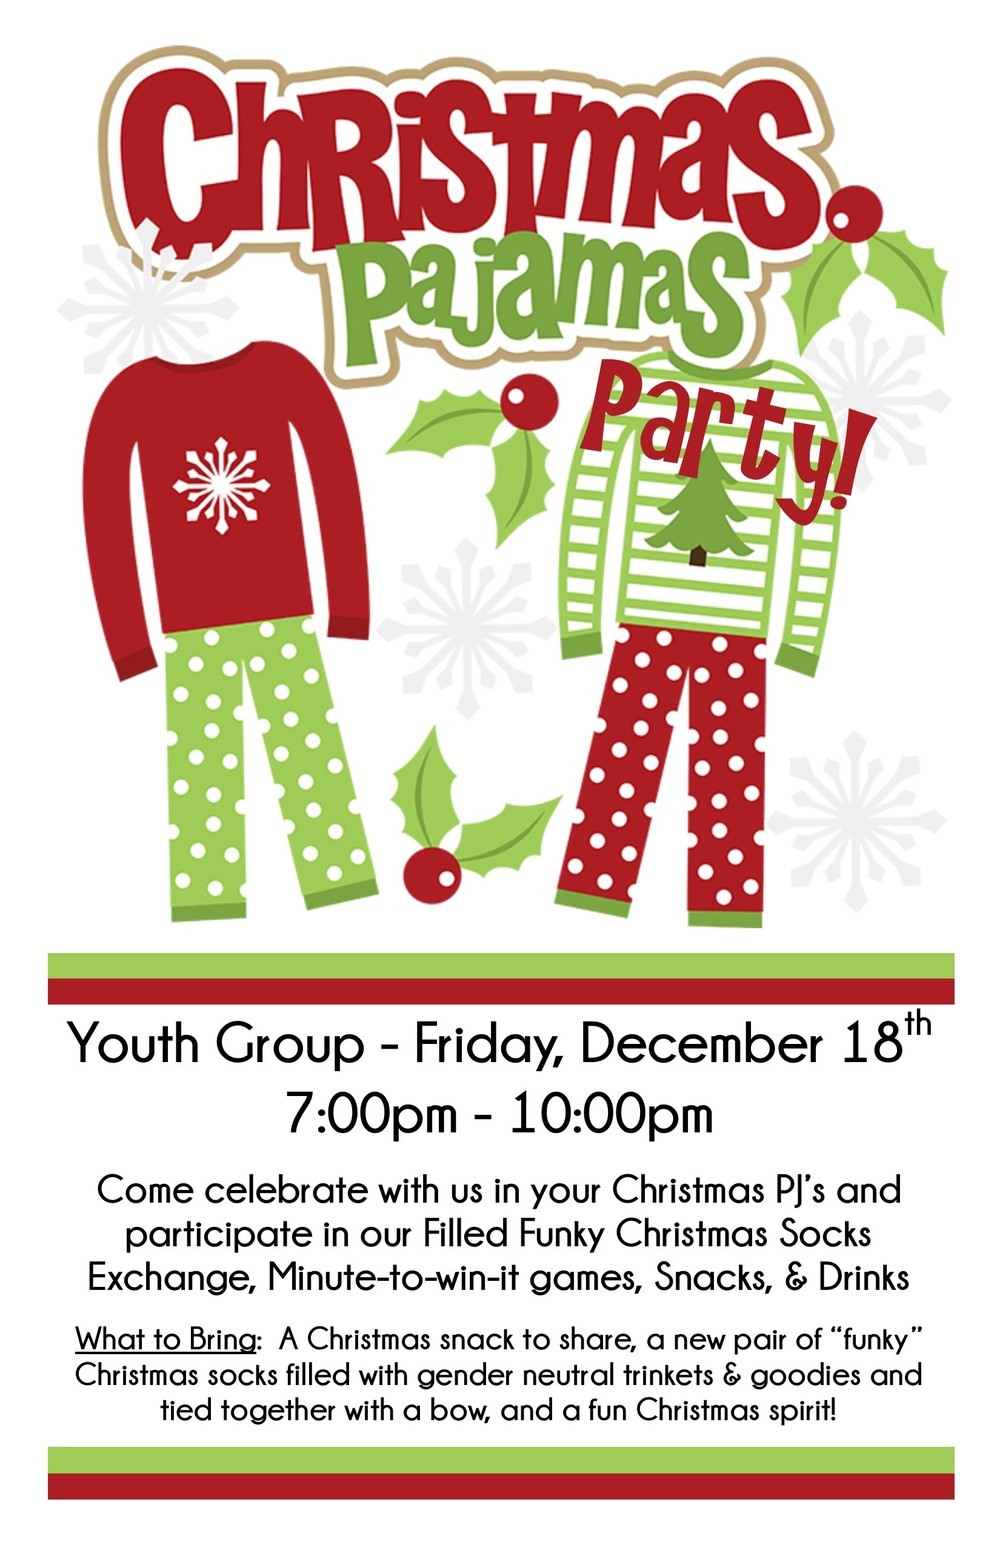 middlehigh school christmas party - Christmas Youth Group Games